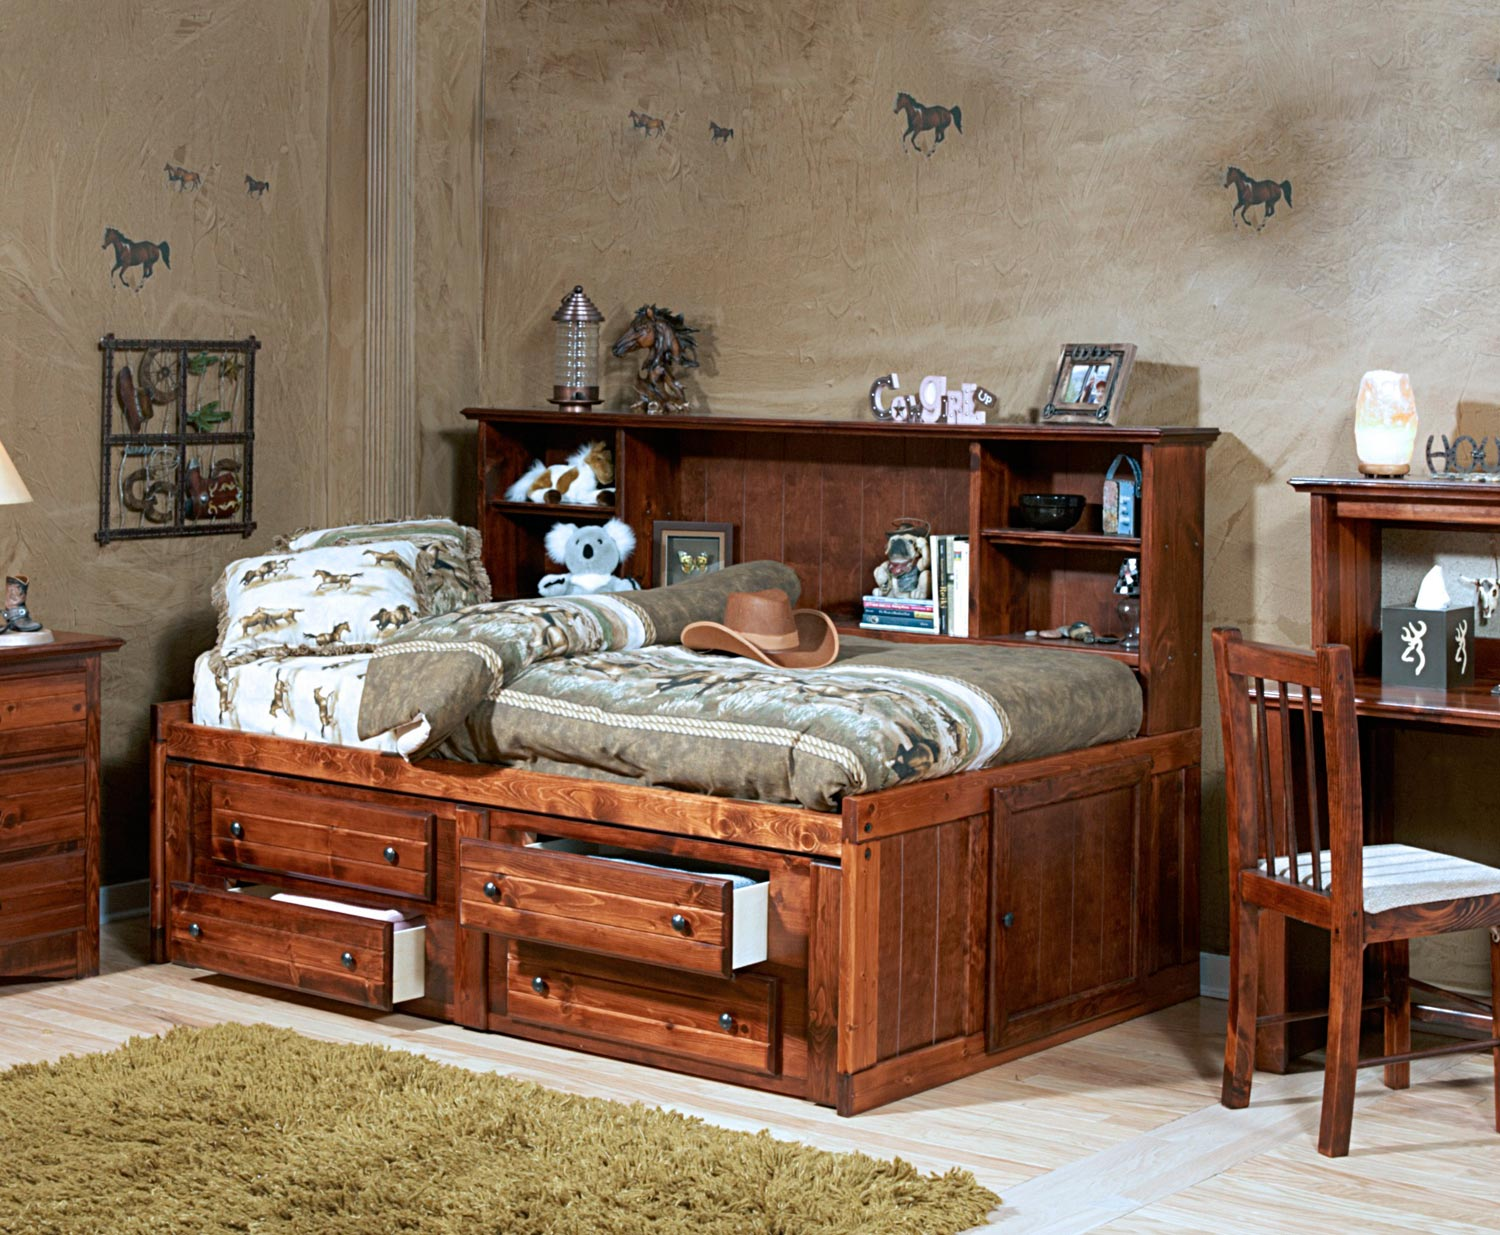 Chelsea Home 3524457-4458 Twin Mates Bed with Bookcase - Cocoa